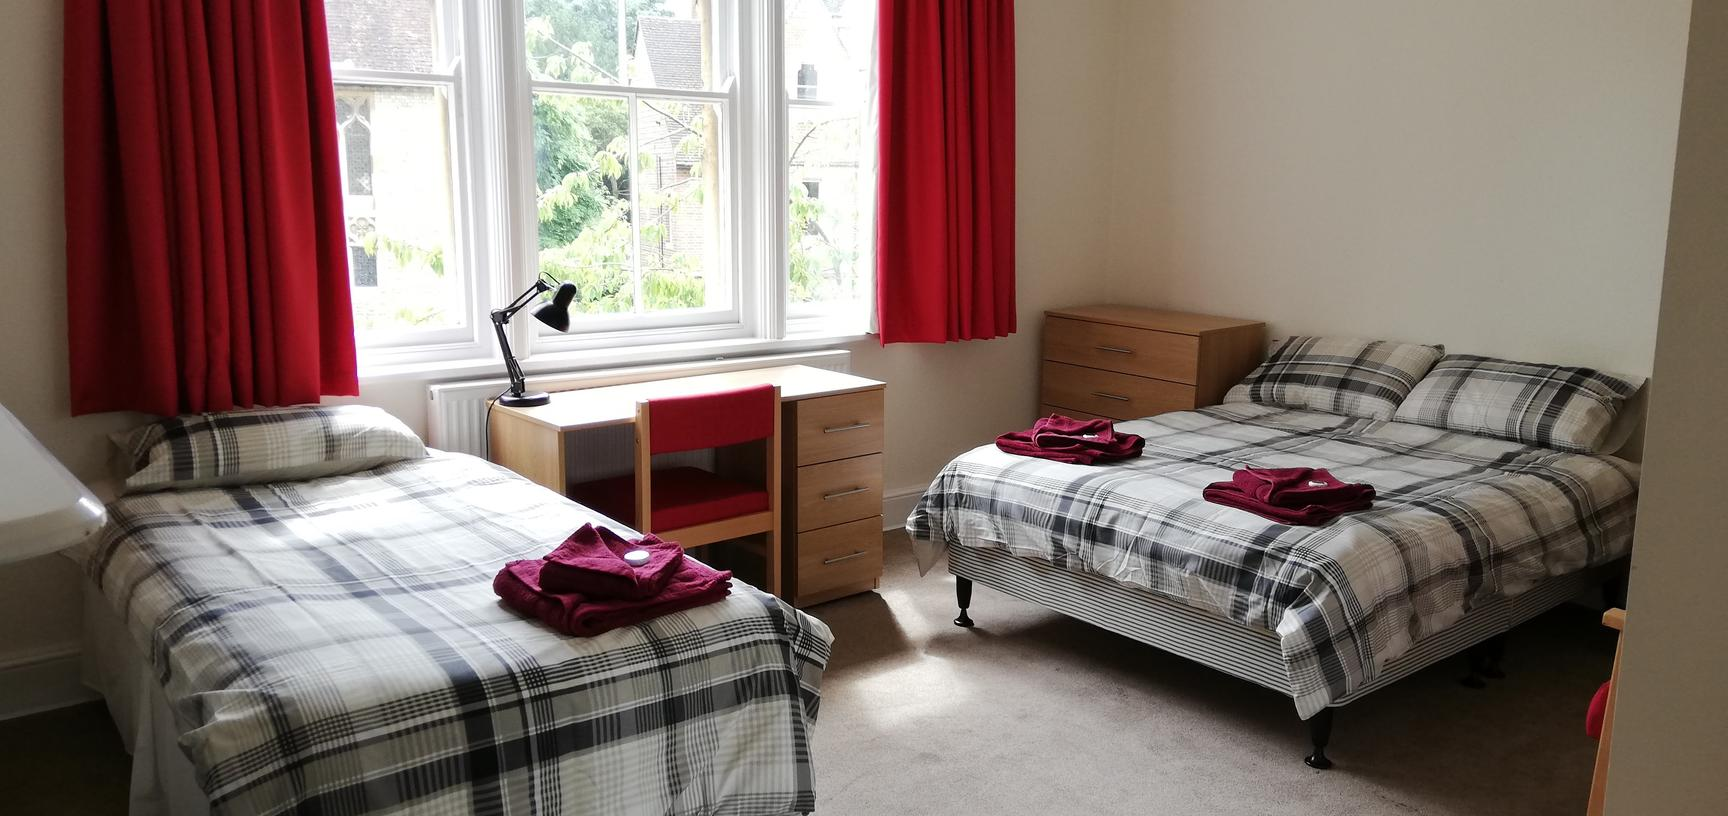 Photo of a bedroom